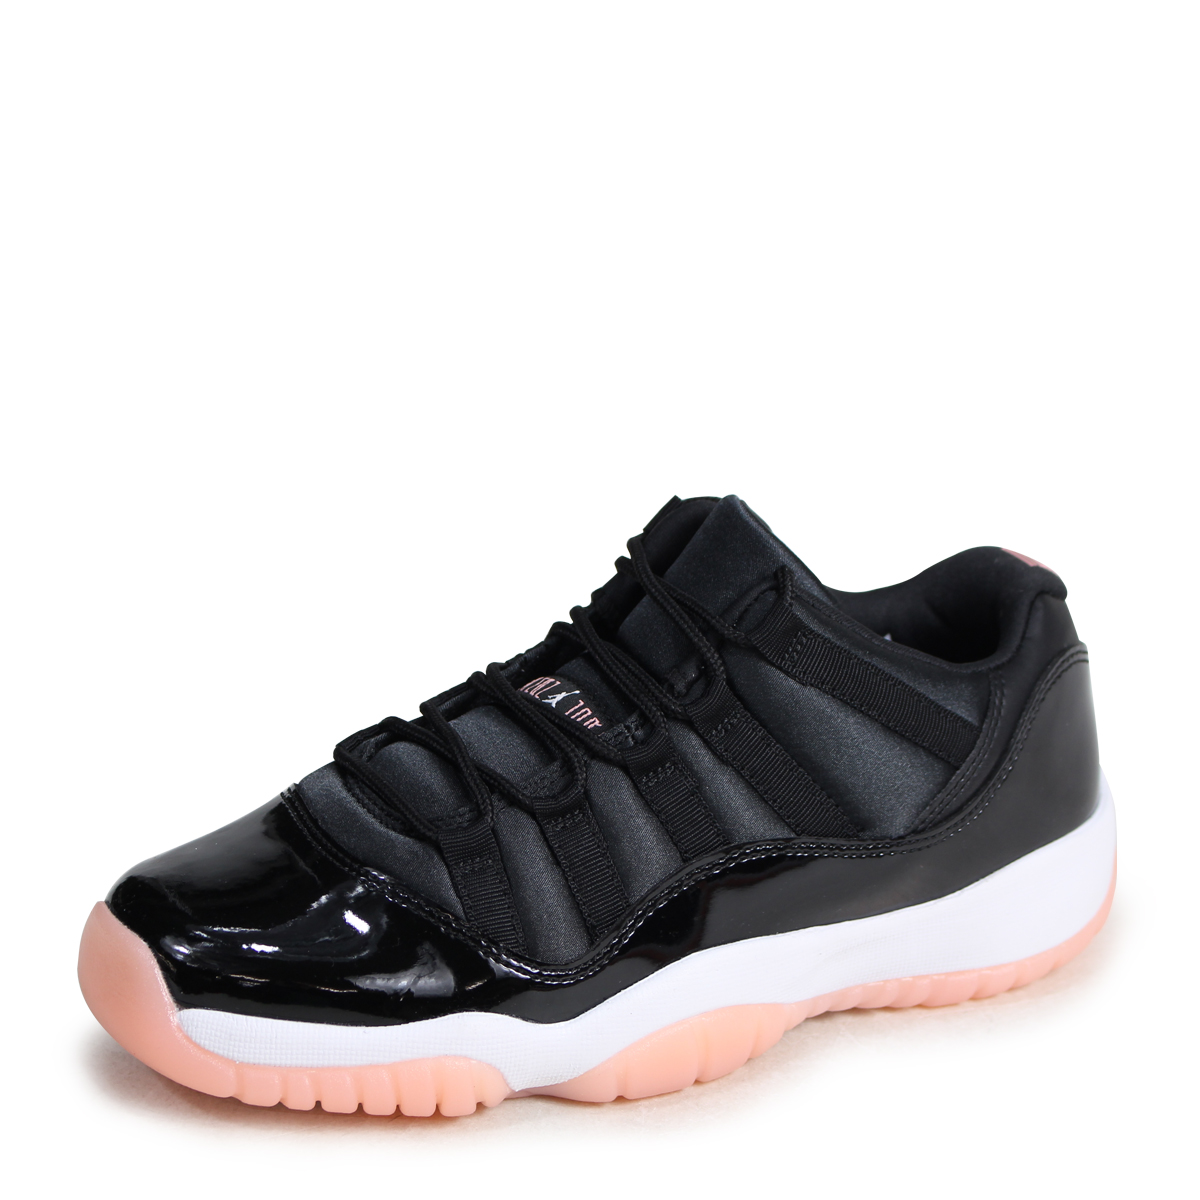 f1fa25433ae0 ALLSPORTS  NIKE AIR JORDAN 11 RETRO LOW GG Nike Air Jordan 11 Lady s ...